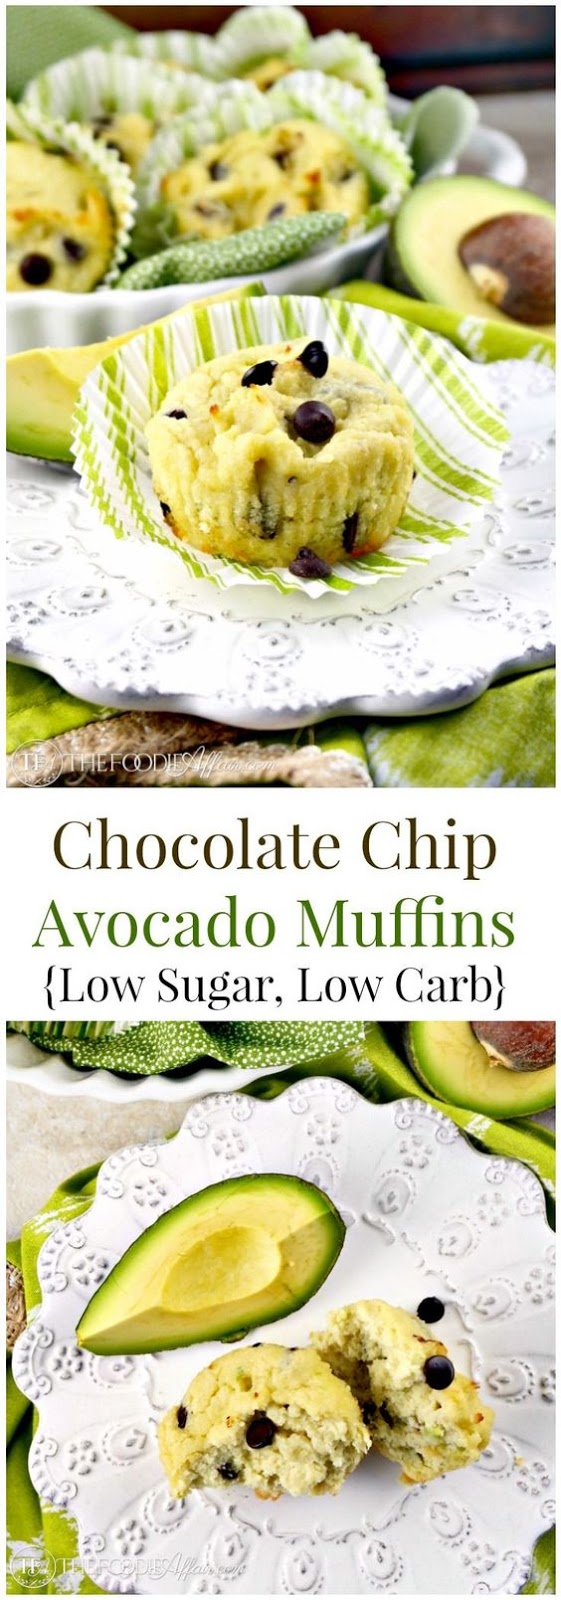 CHOCOLATE CHIP AVOCADO MUFFINS